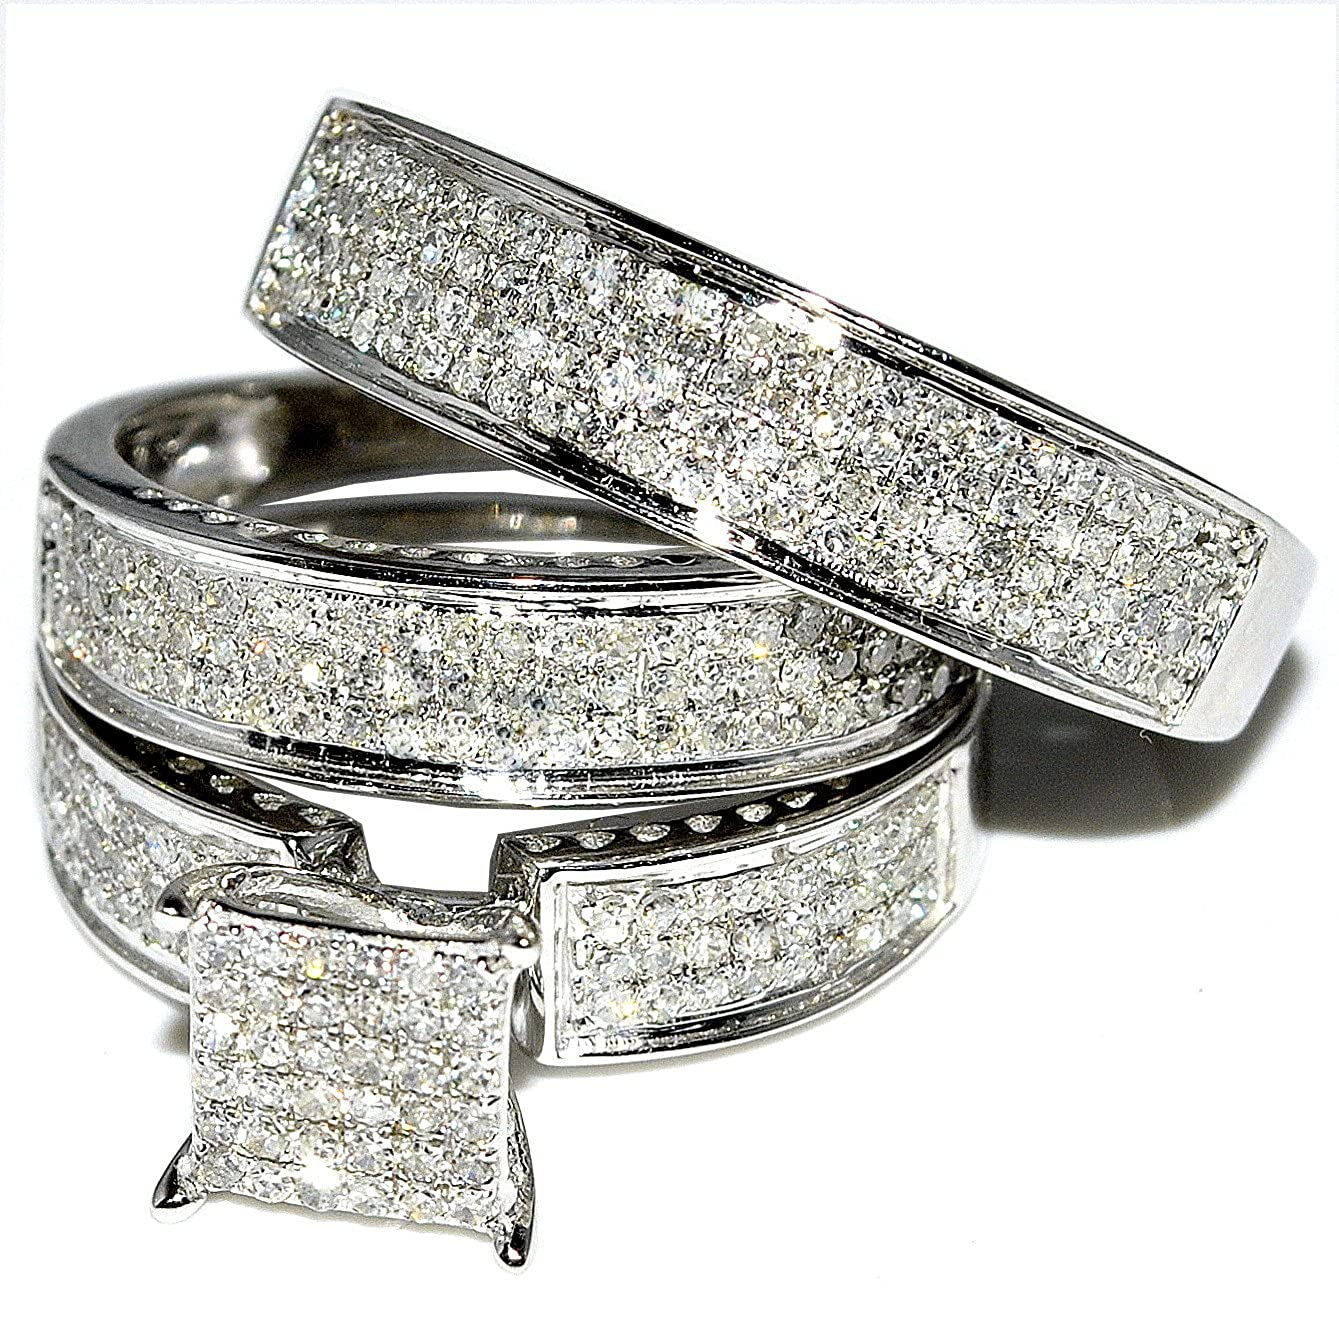 Rings Midwestjewellery Com Women S His And Her Trio Wedding Rings